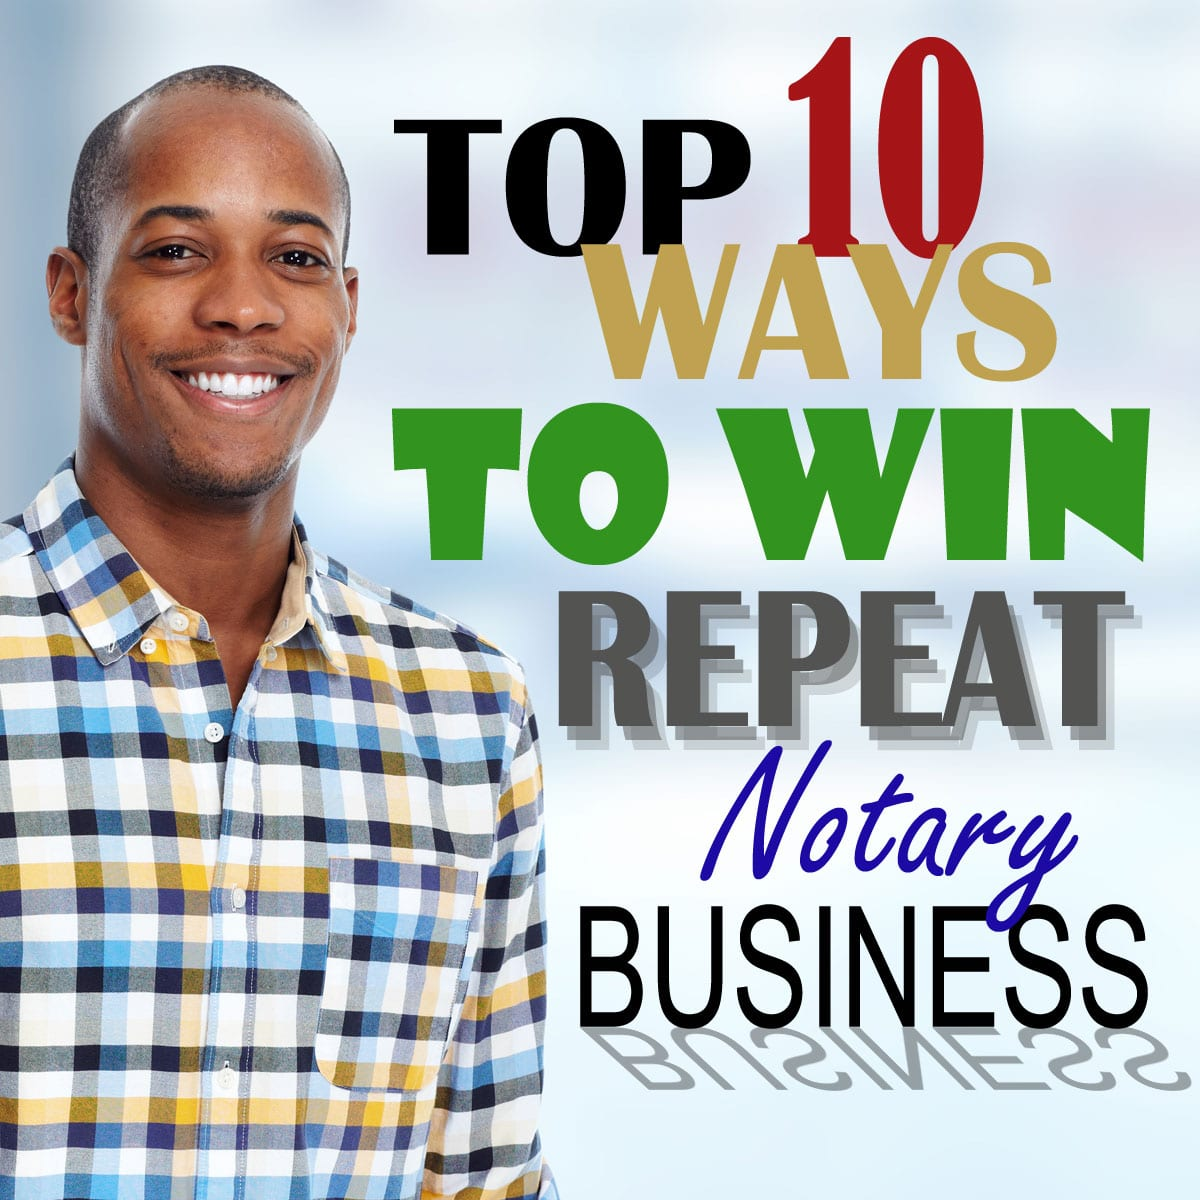 Repeat Notary Business